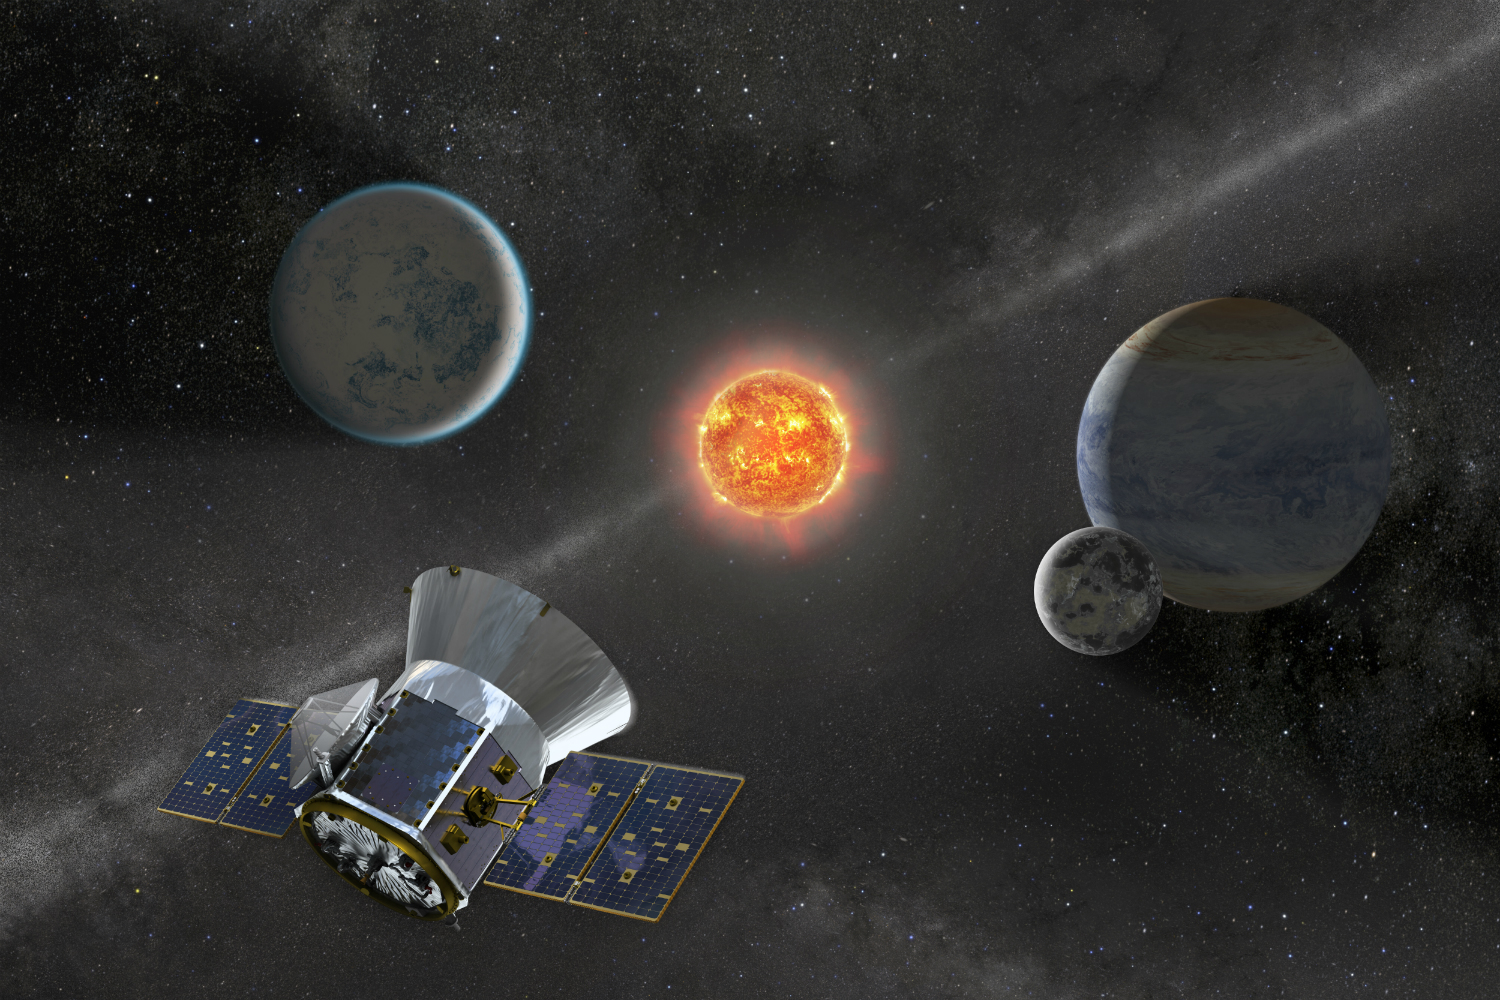 TESS has discovered the smallest exoplanet found to date. The tiny world is estimated to only be about 80 percent the size of Earth. Image Credit: NASA